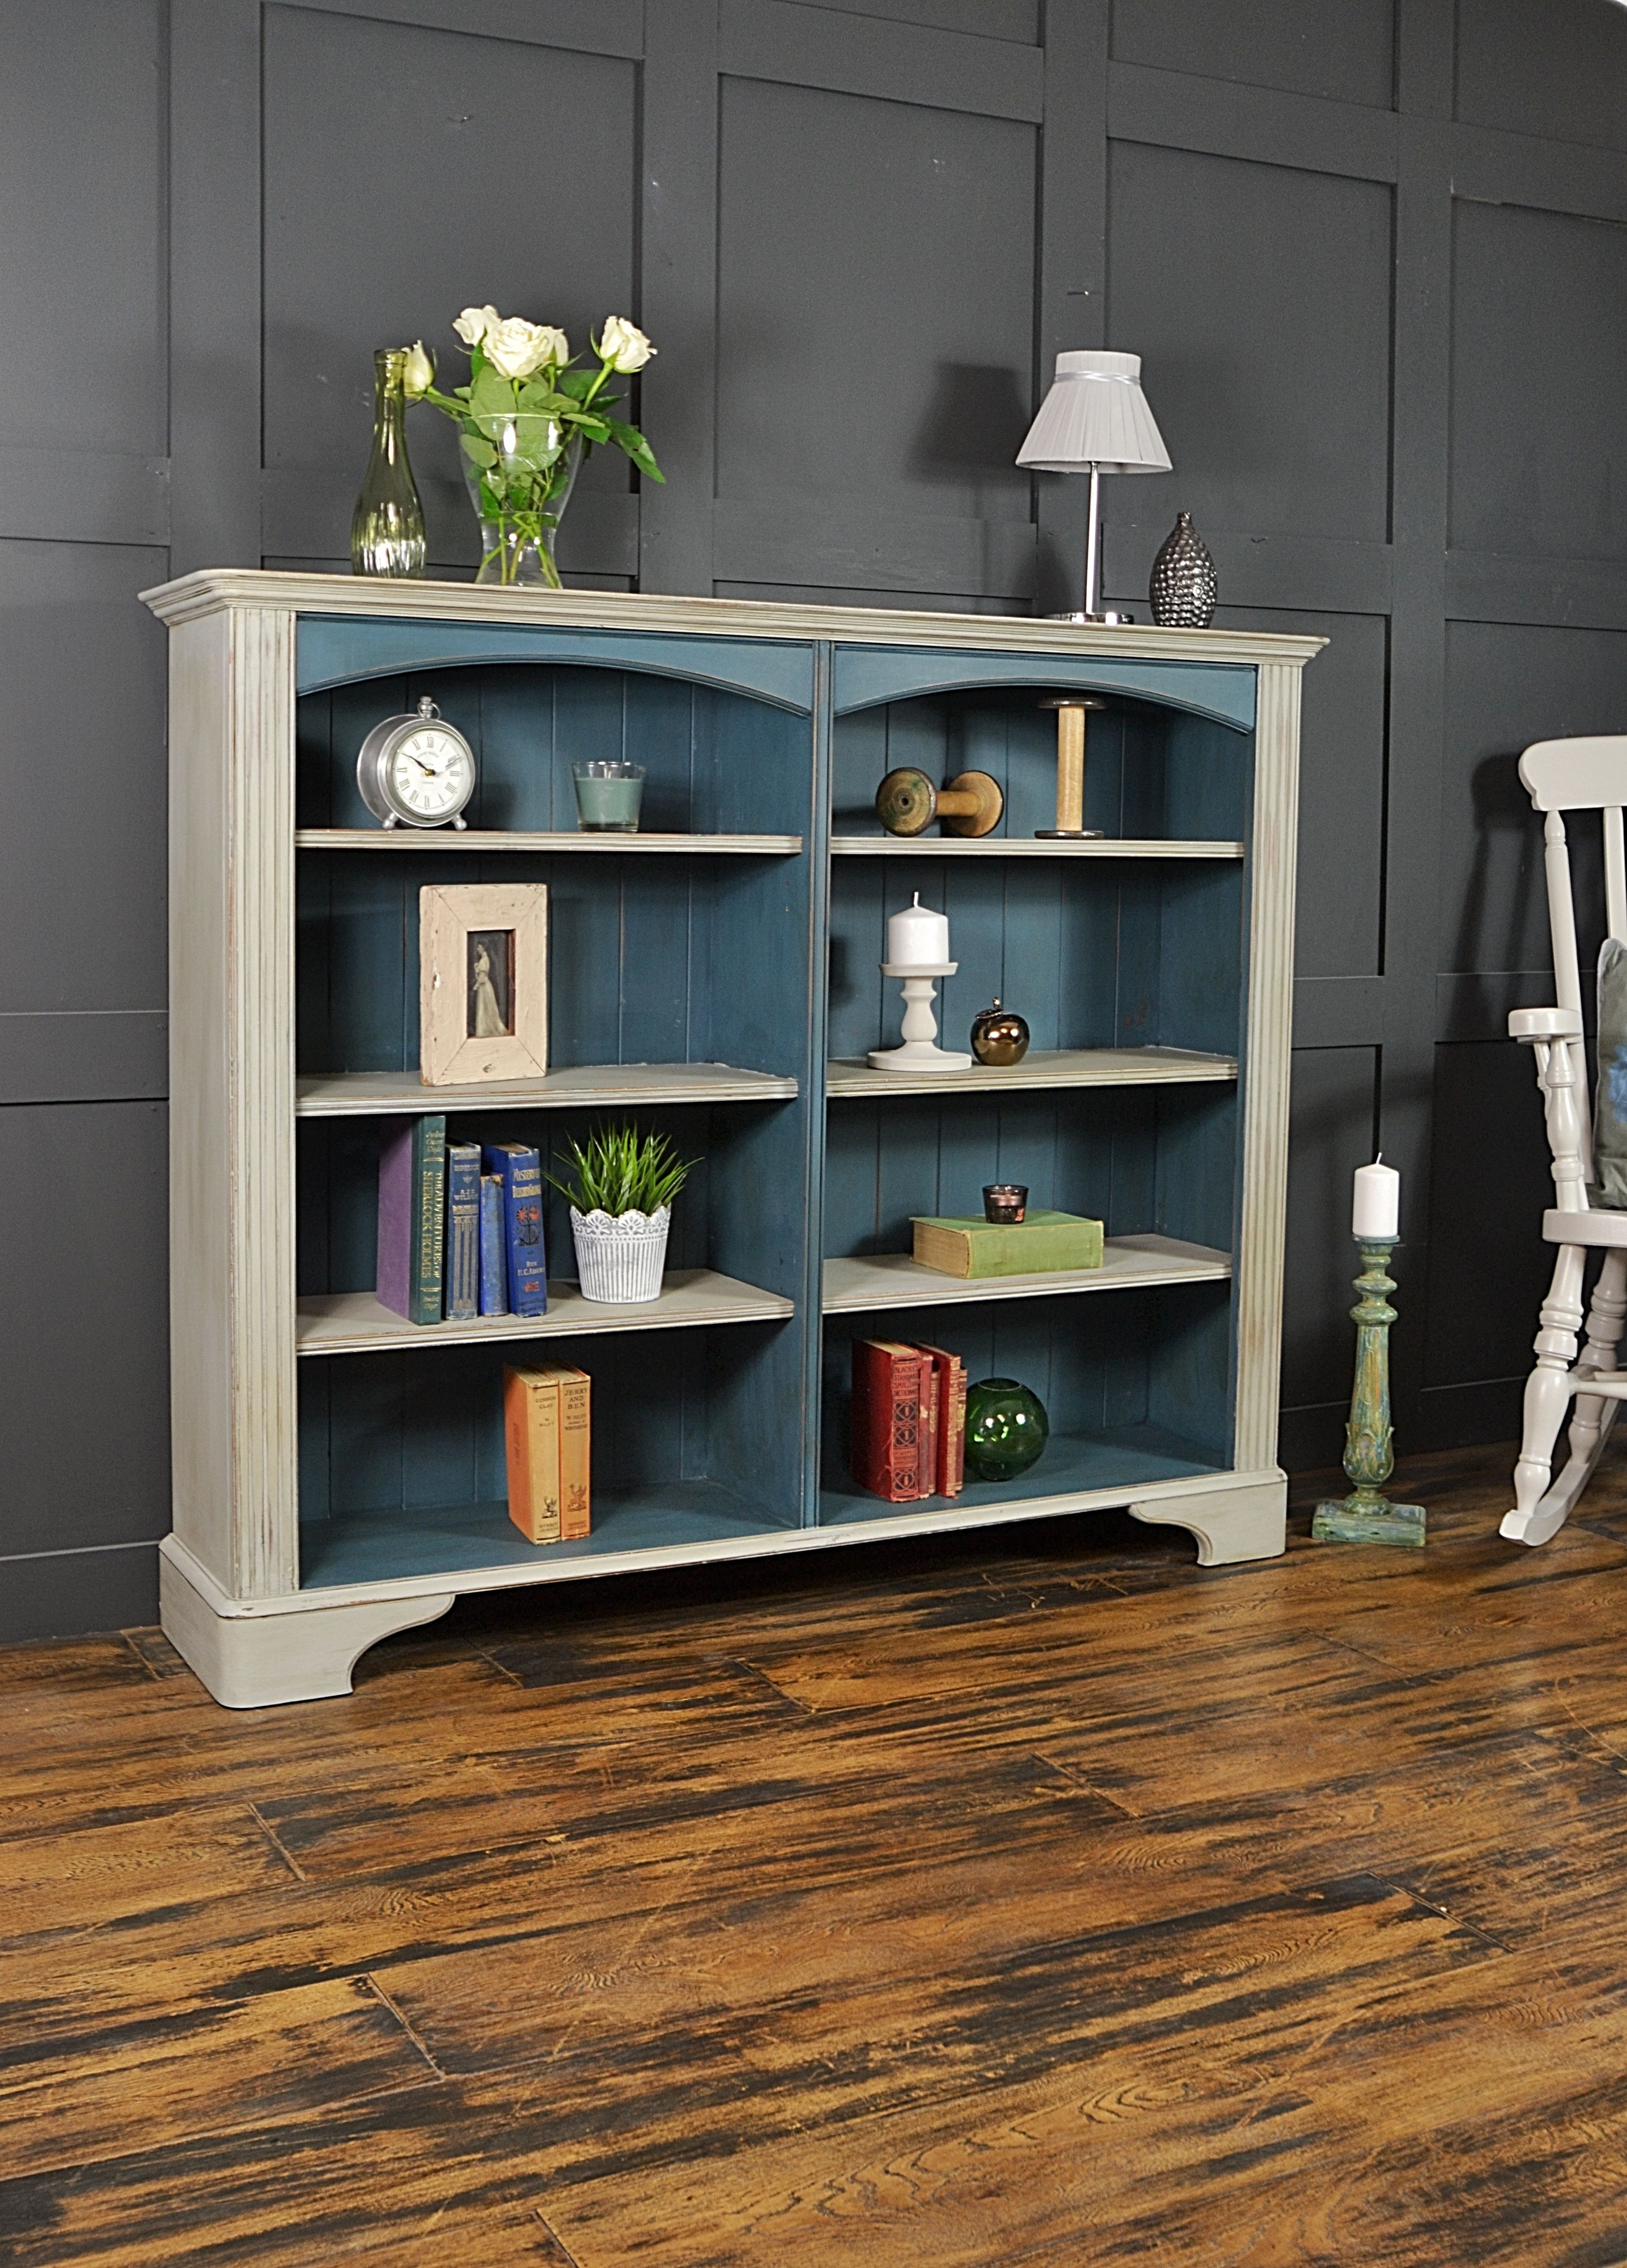 We Love This Ducal Bookcase With Its Elegant Curve Front